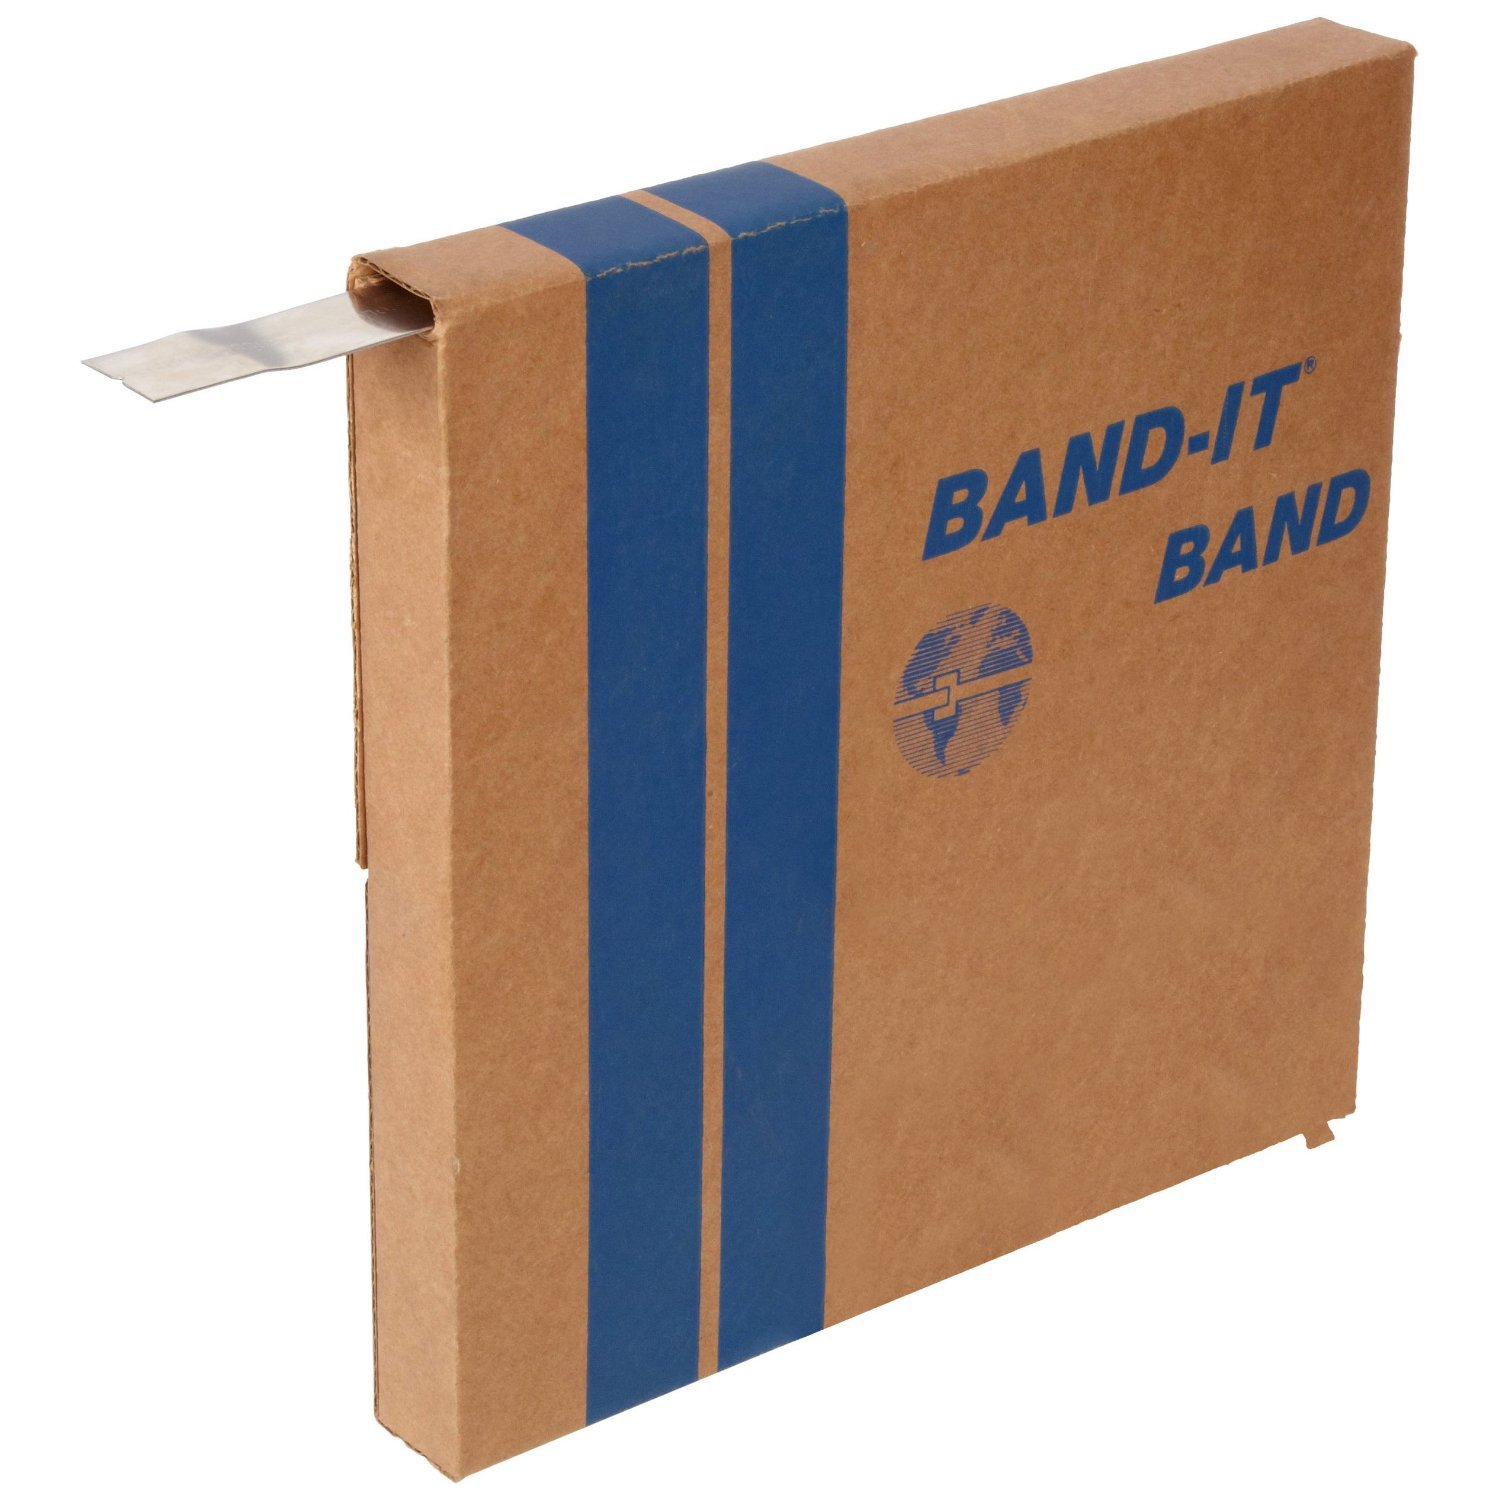 BAND-IT C20599 201 Stainless Steel Bright Annealed Finish Band, 5/8'' Width X 0.030'' Thick, 100 Feet Roll by Band-It